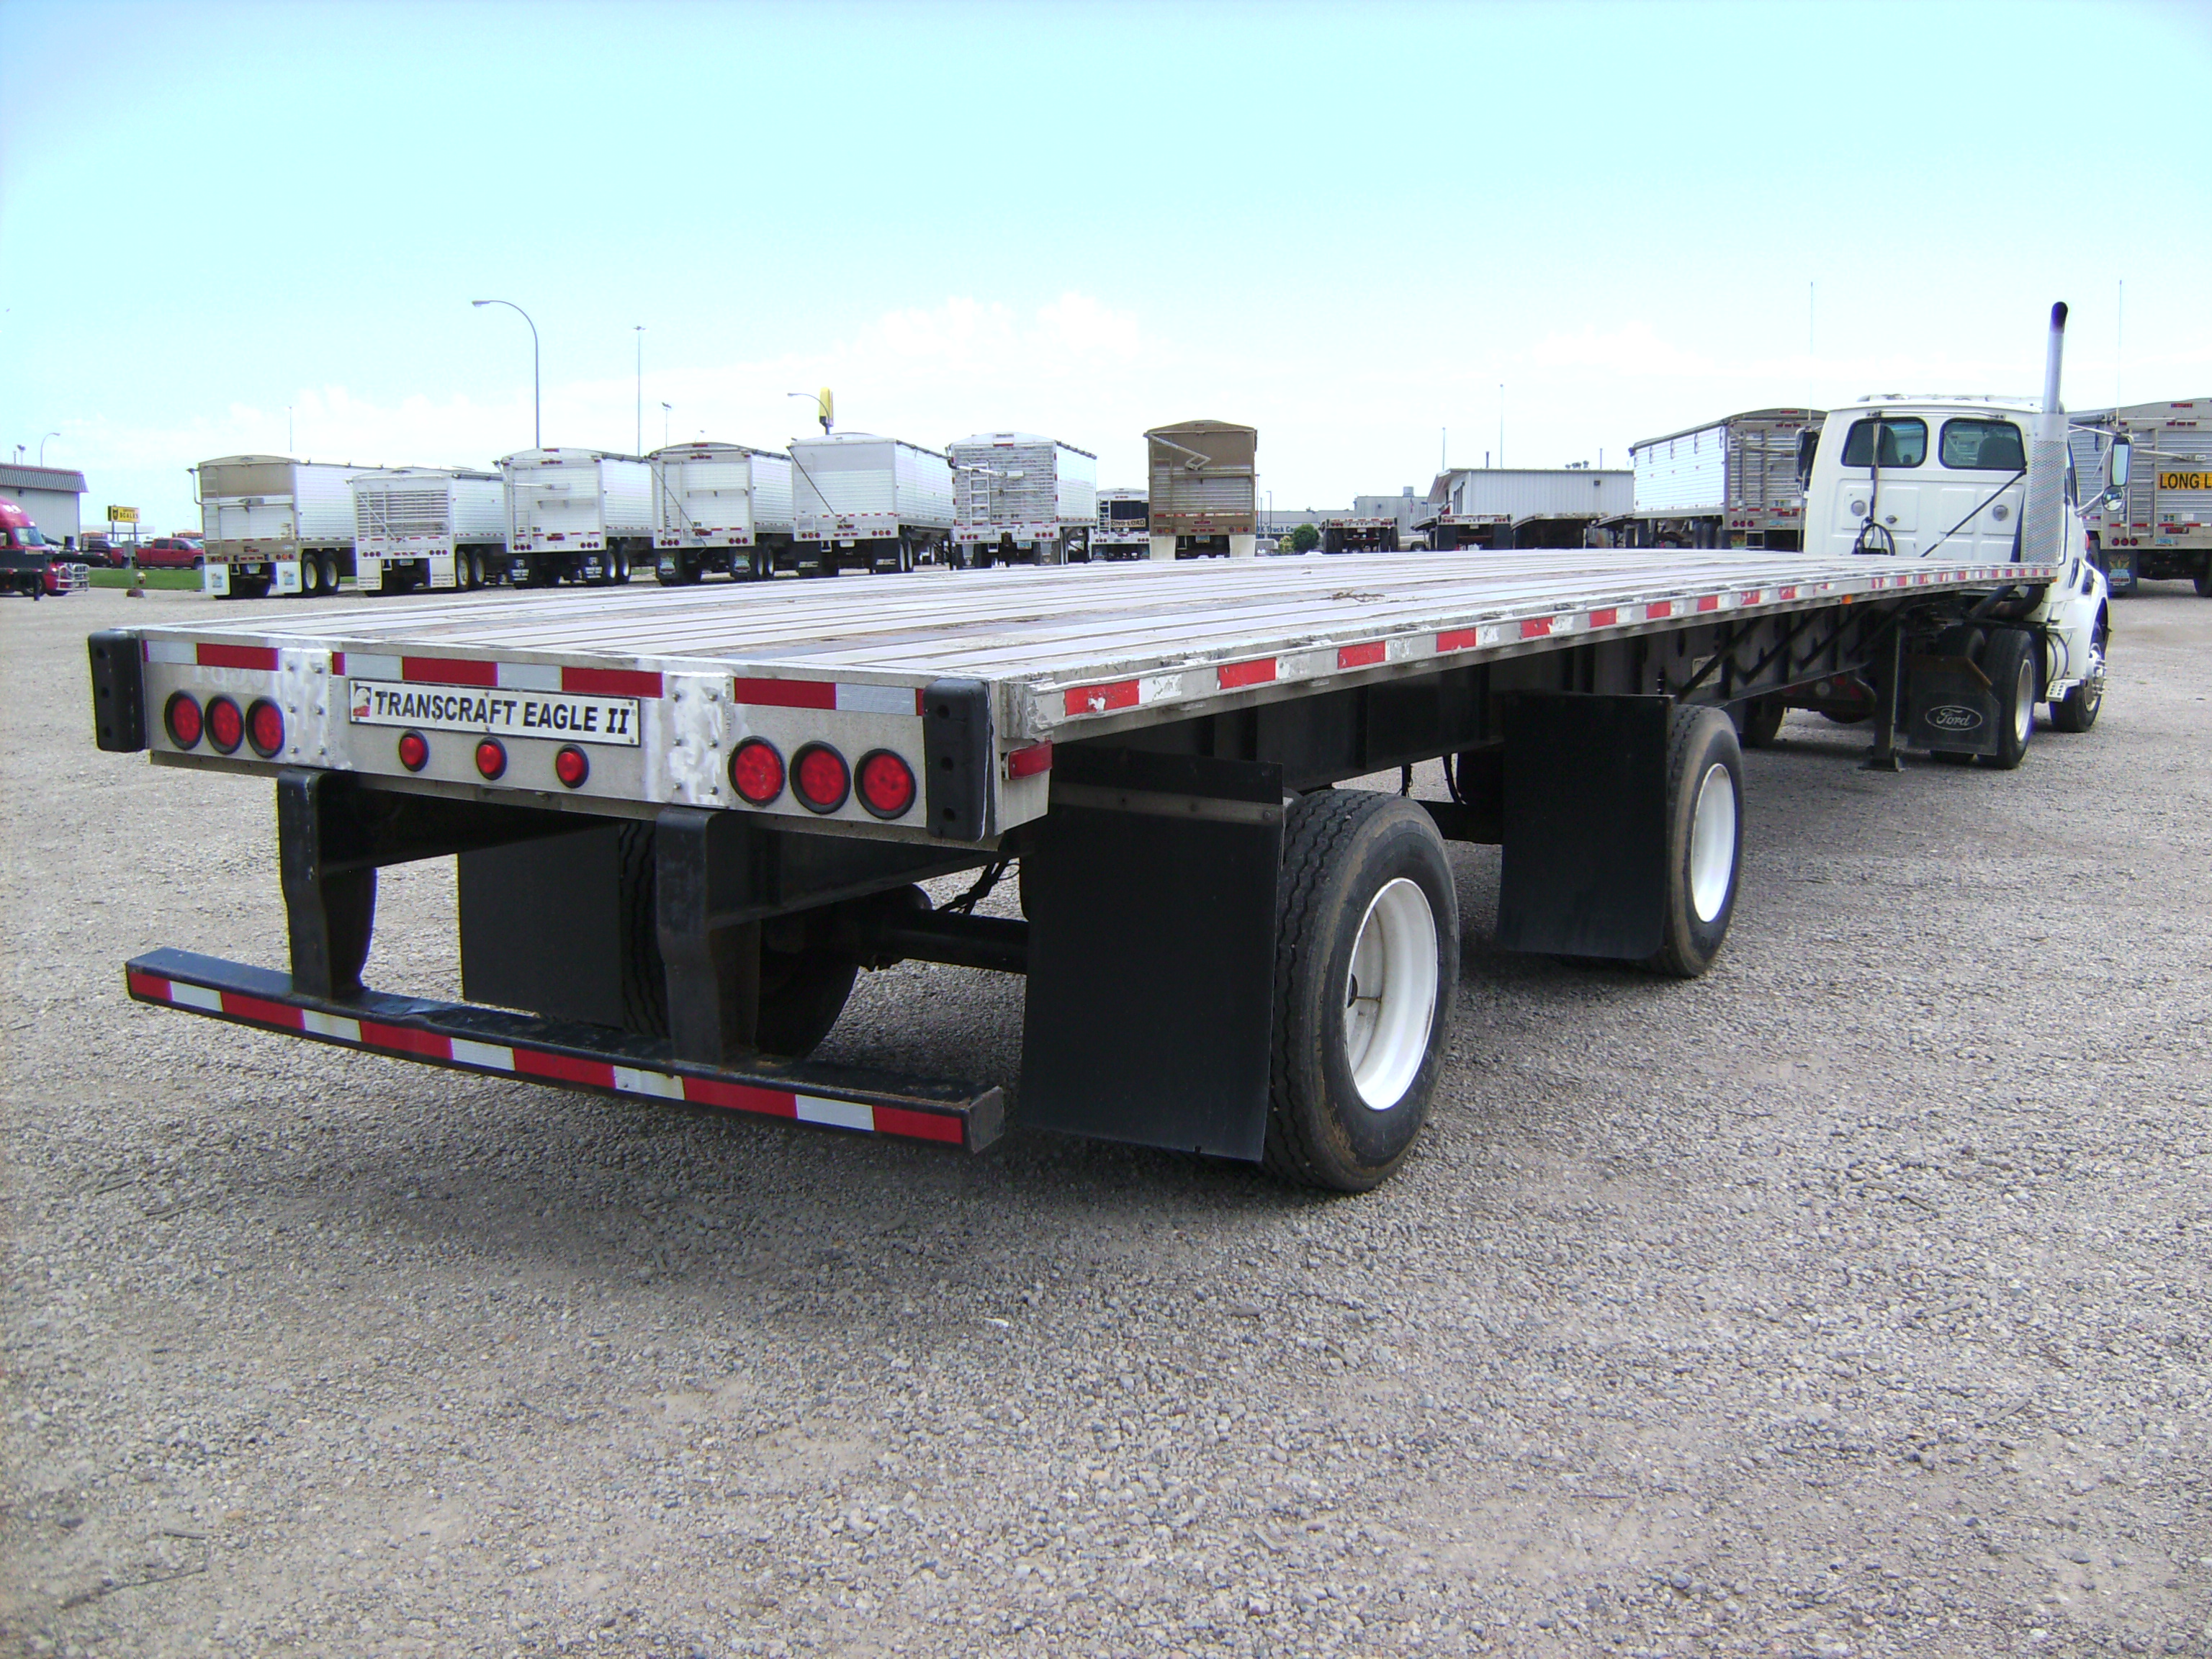 http://www.semitrailersalesandleasing.com/image/cache/2005_Transcraft_48x102_flatbed_012740_007.JPG Image